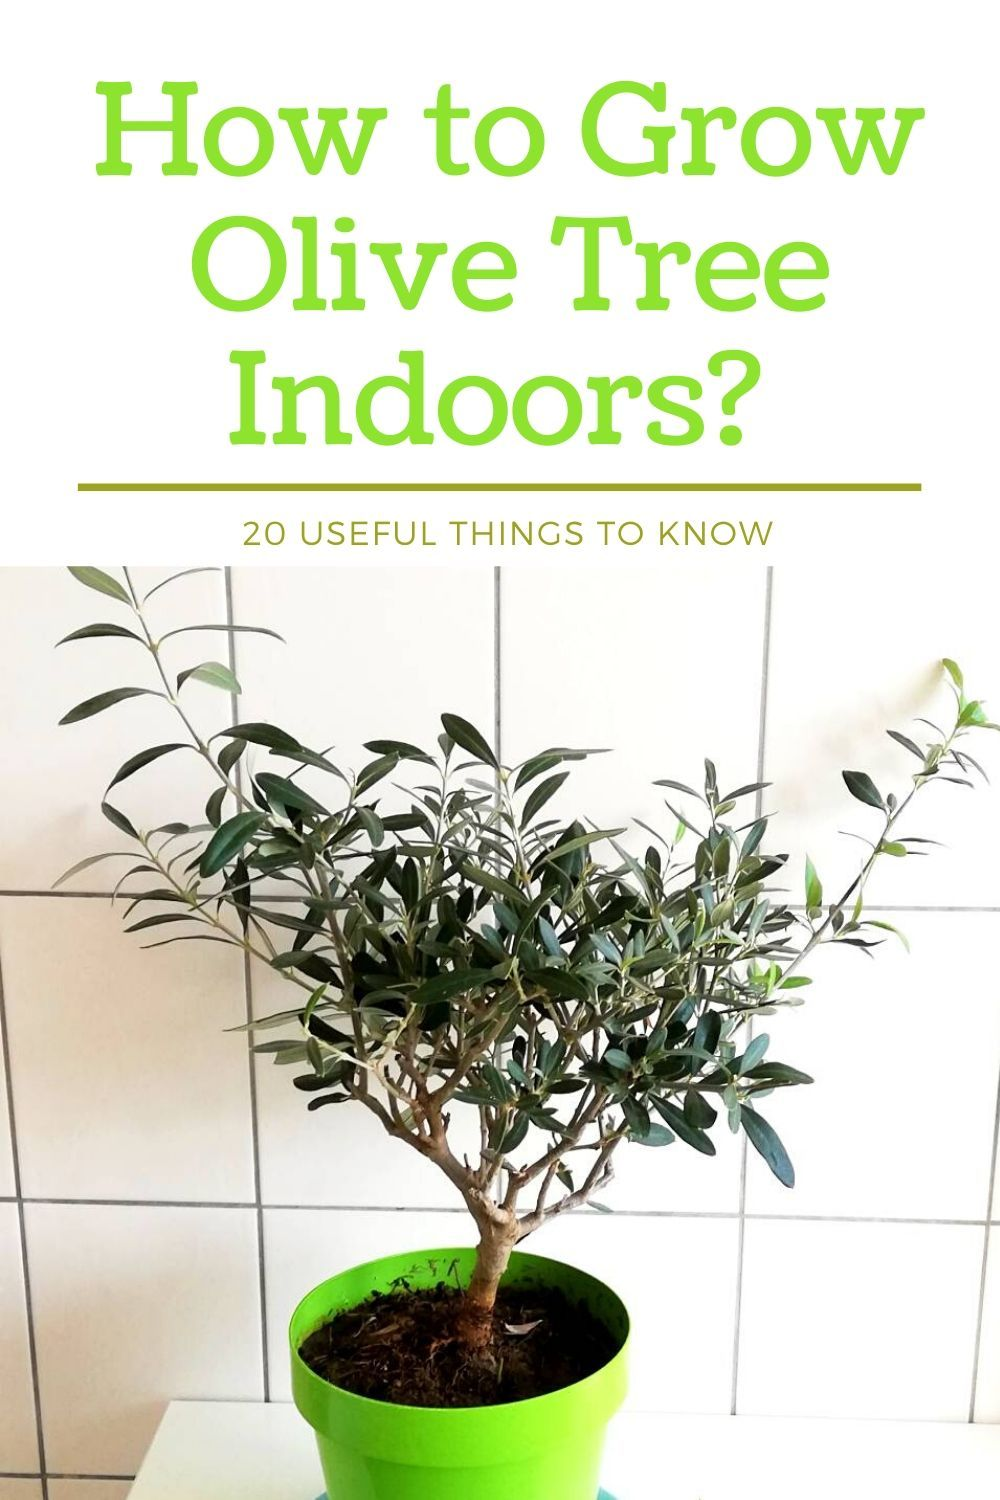 How to grow olive tree indoors? in 2020 Growing olive